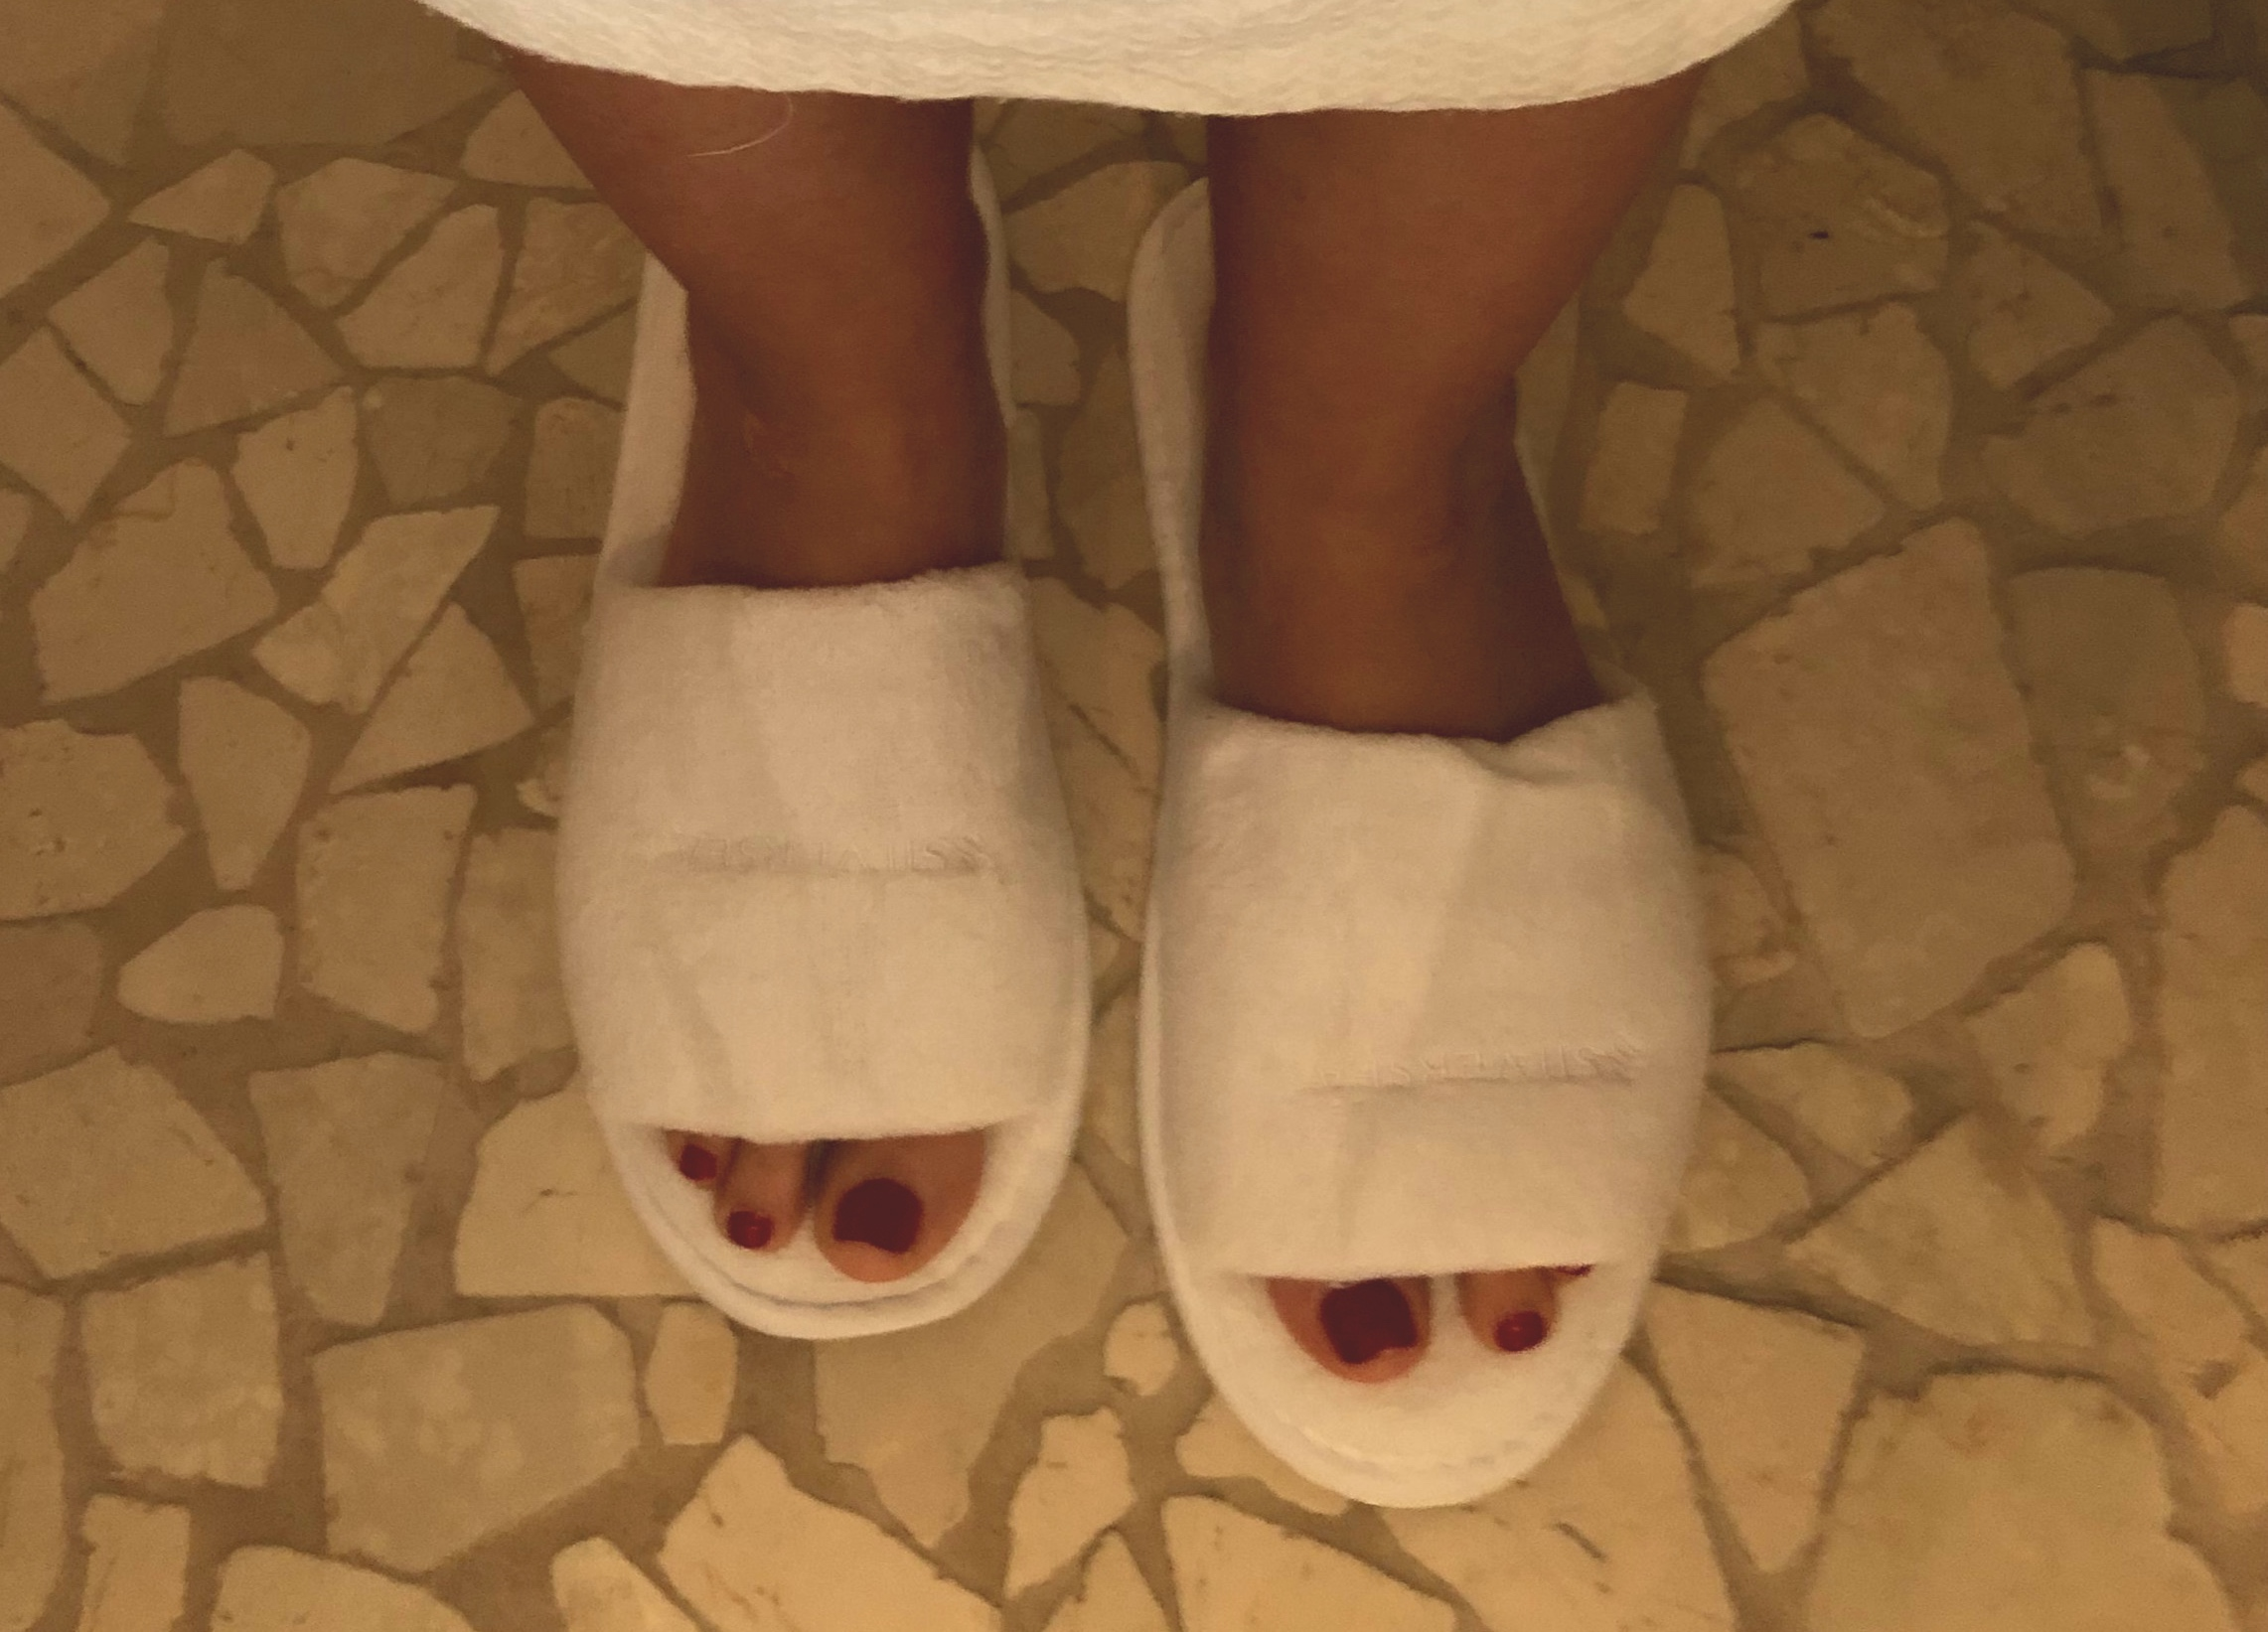 These spa slippers were the softest slippers I have ever worn.